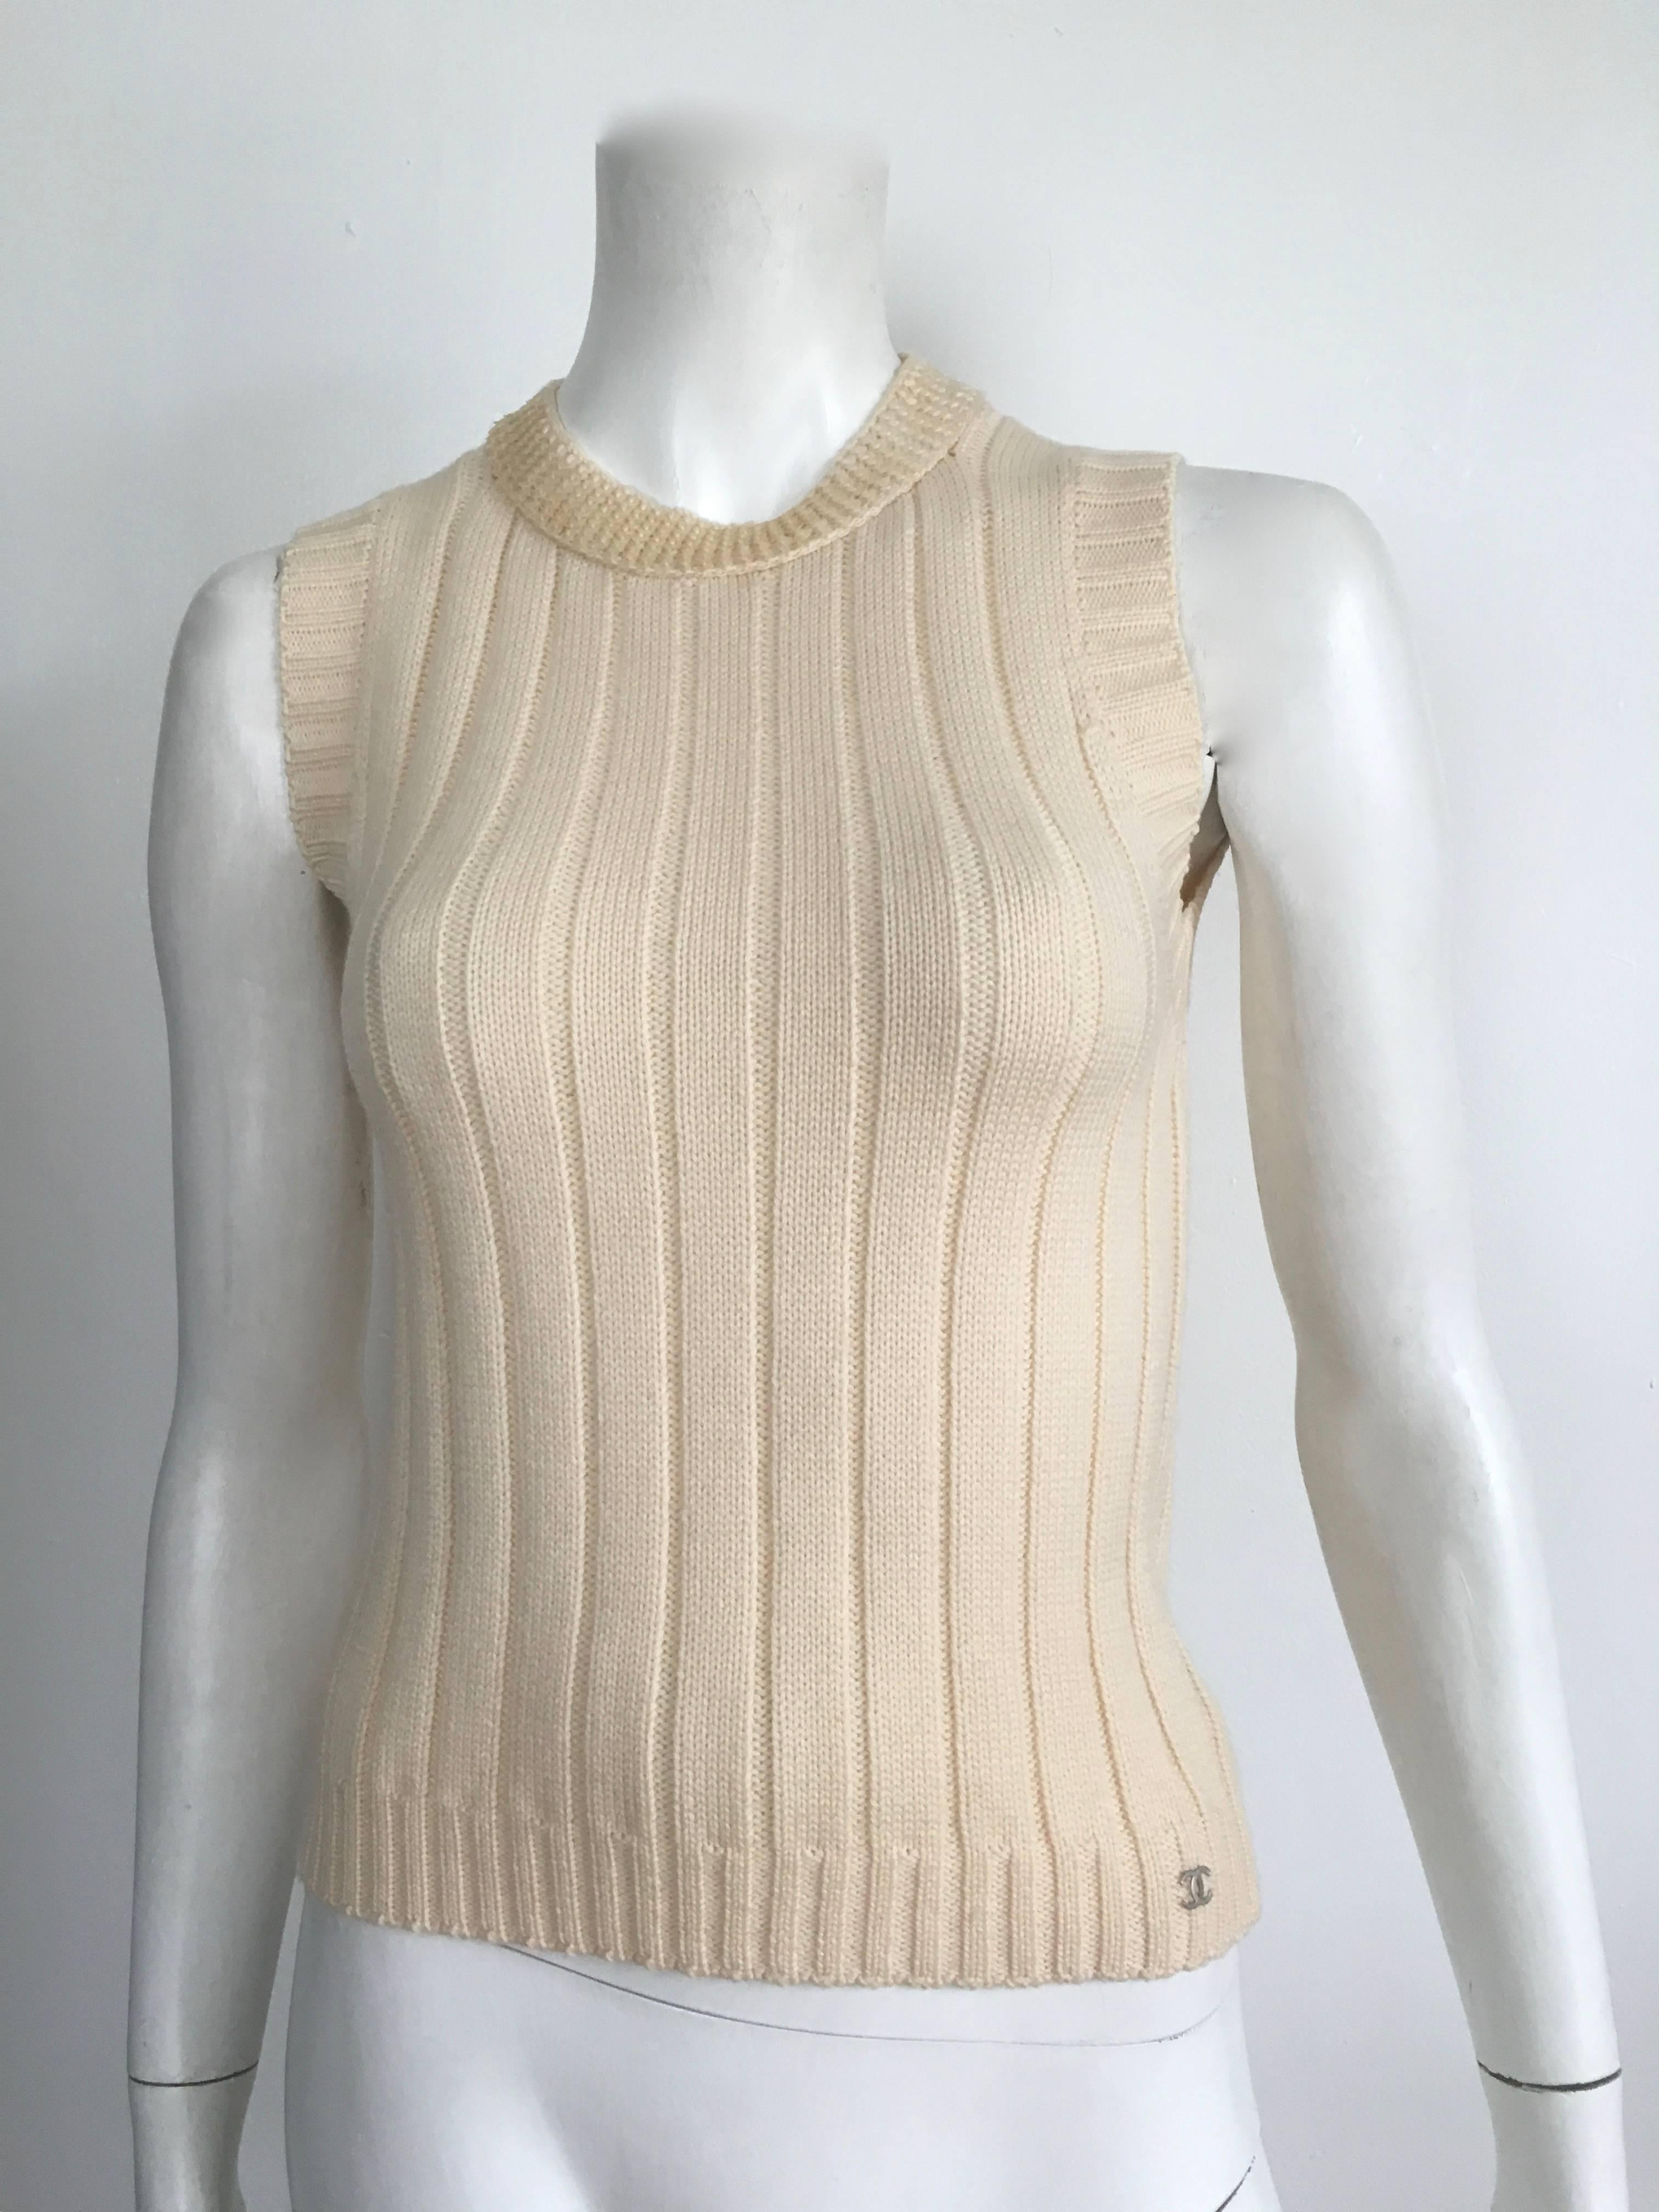 Chanel Wool Cream Knit Sequin Tank And Cardigan Set Size 4